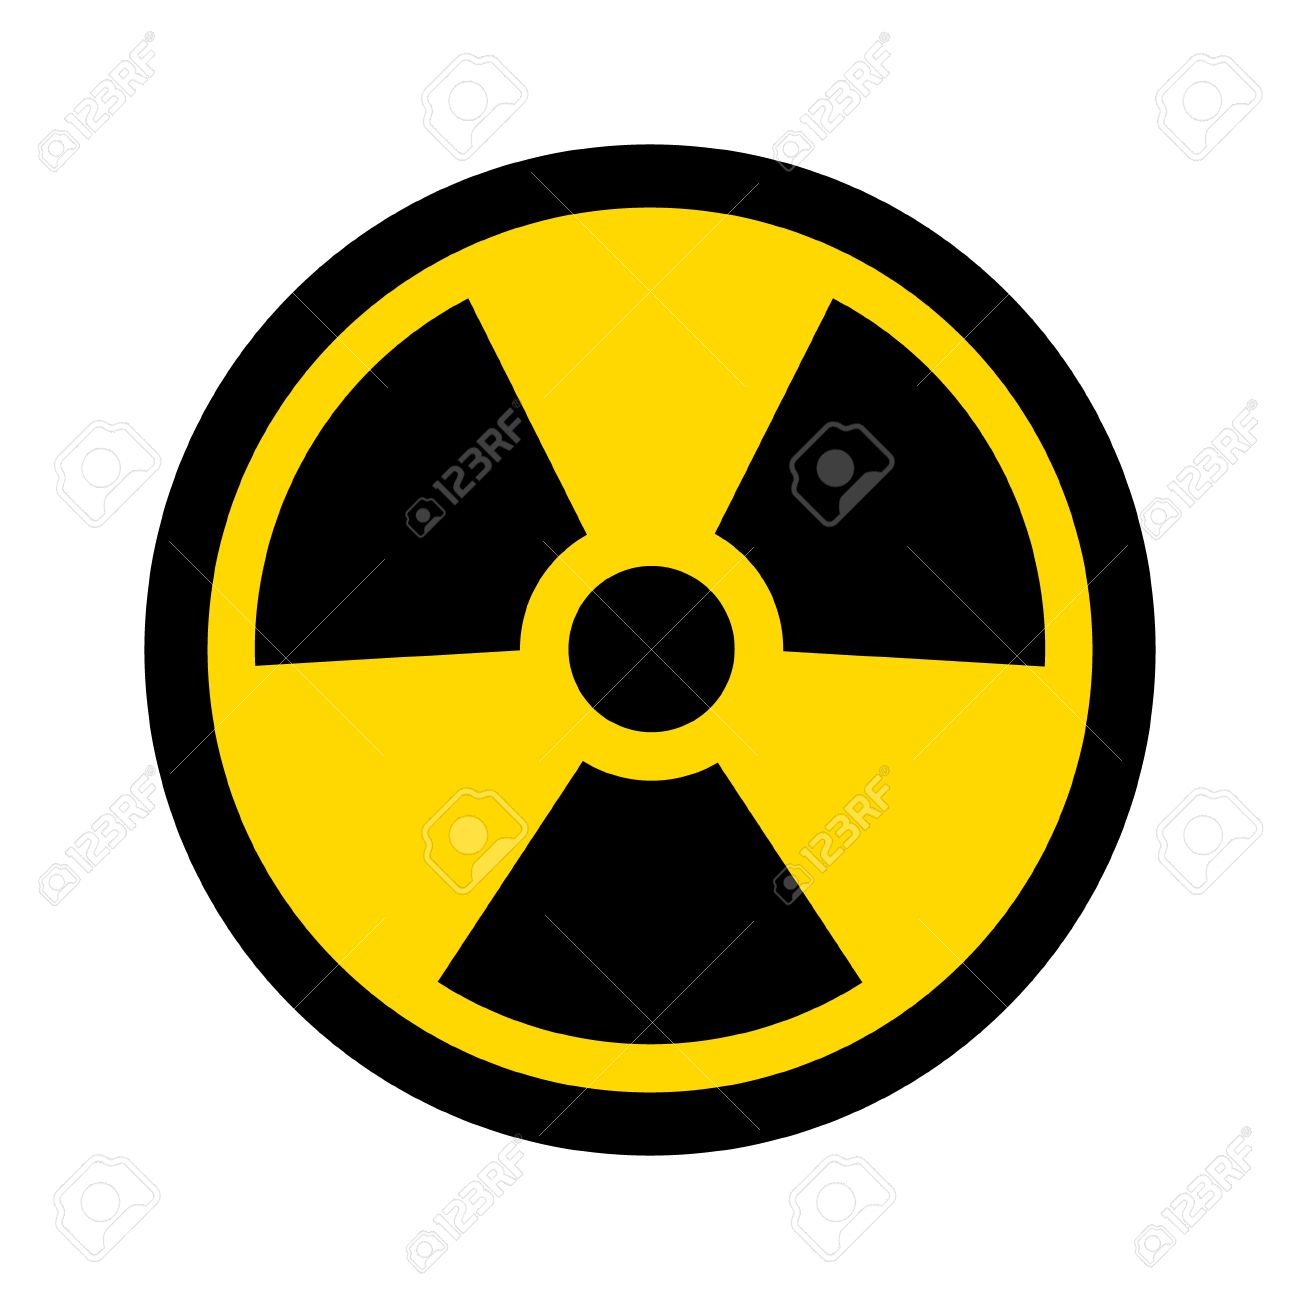 Yellow radioactive radiation symbol flat icon for websites and yellow radioactive radiation symbol flat icon for websites and print stock vector 50177610 biocorpaavc Image collections